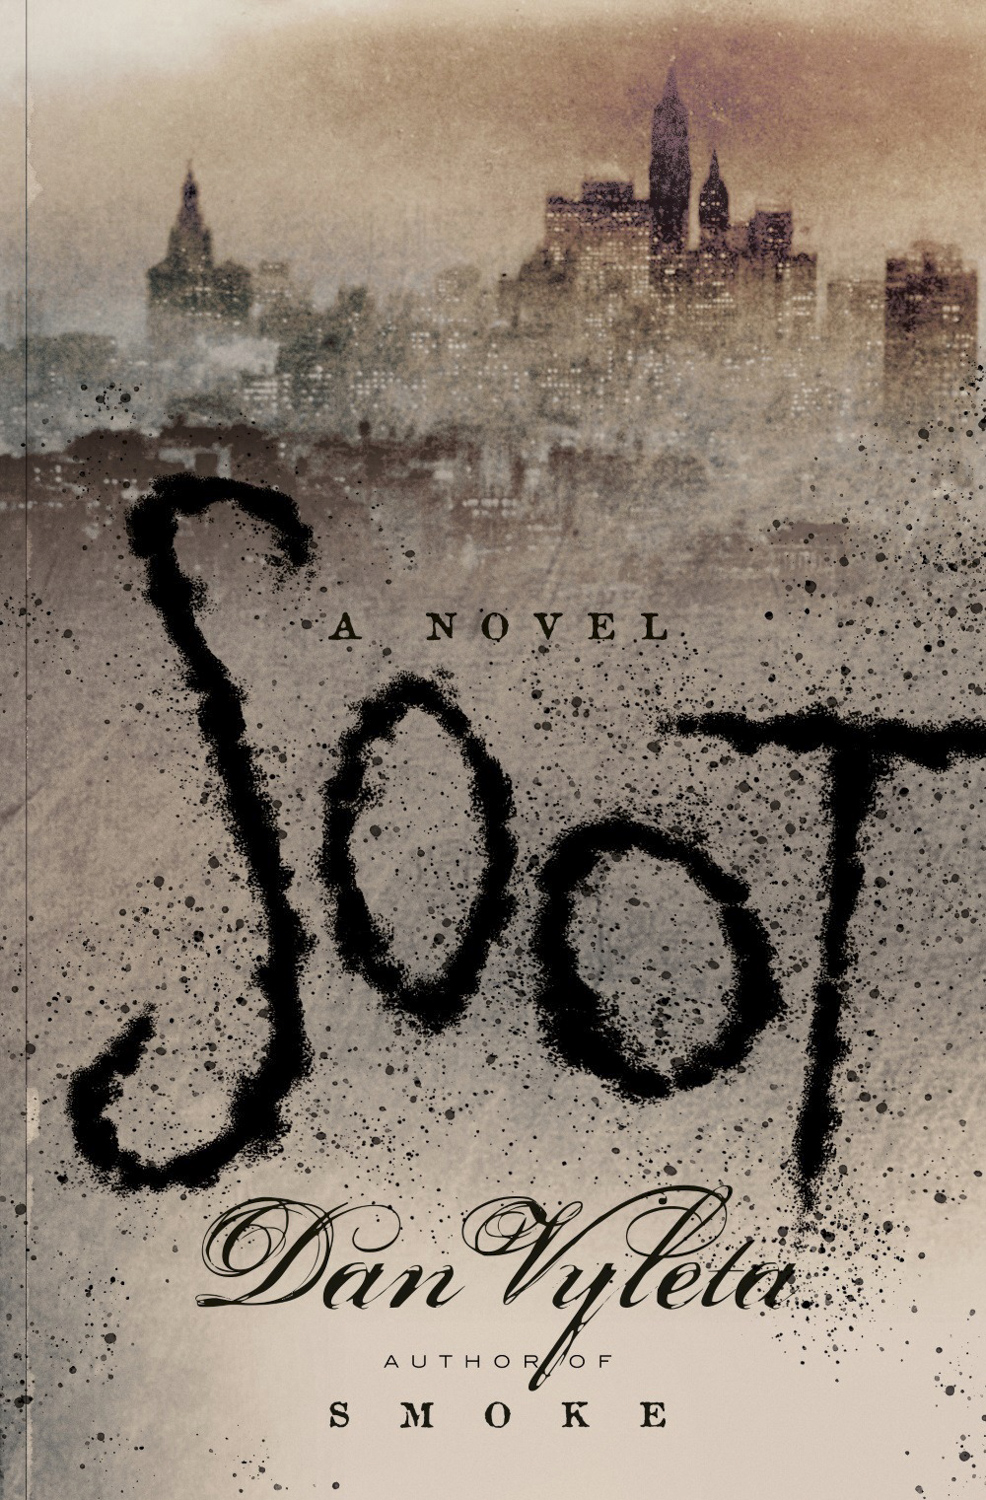 Soot by Dan Vyleta — Doubleday/PRH